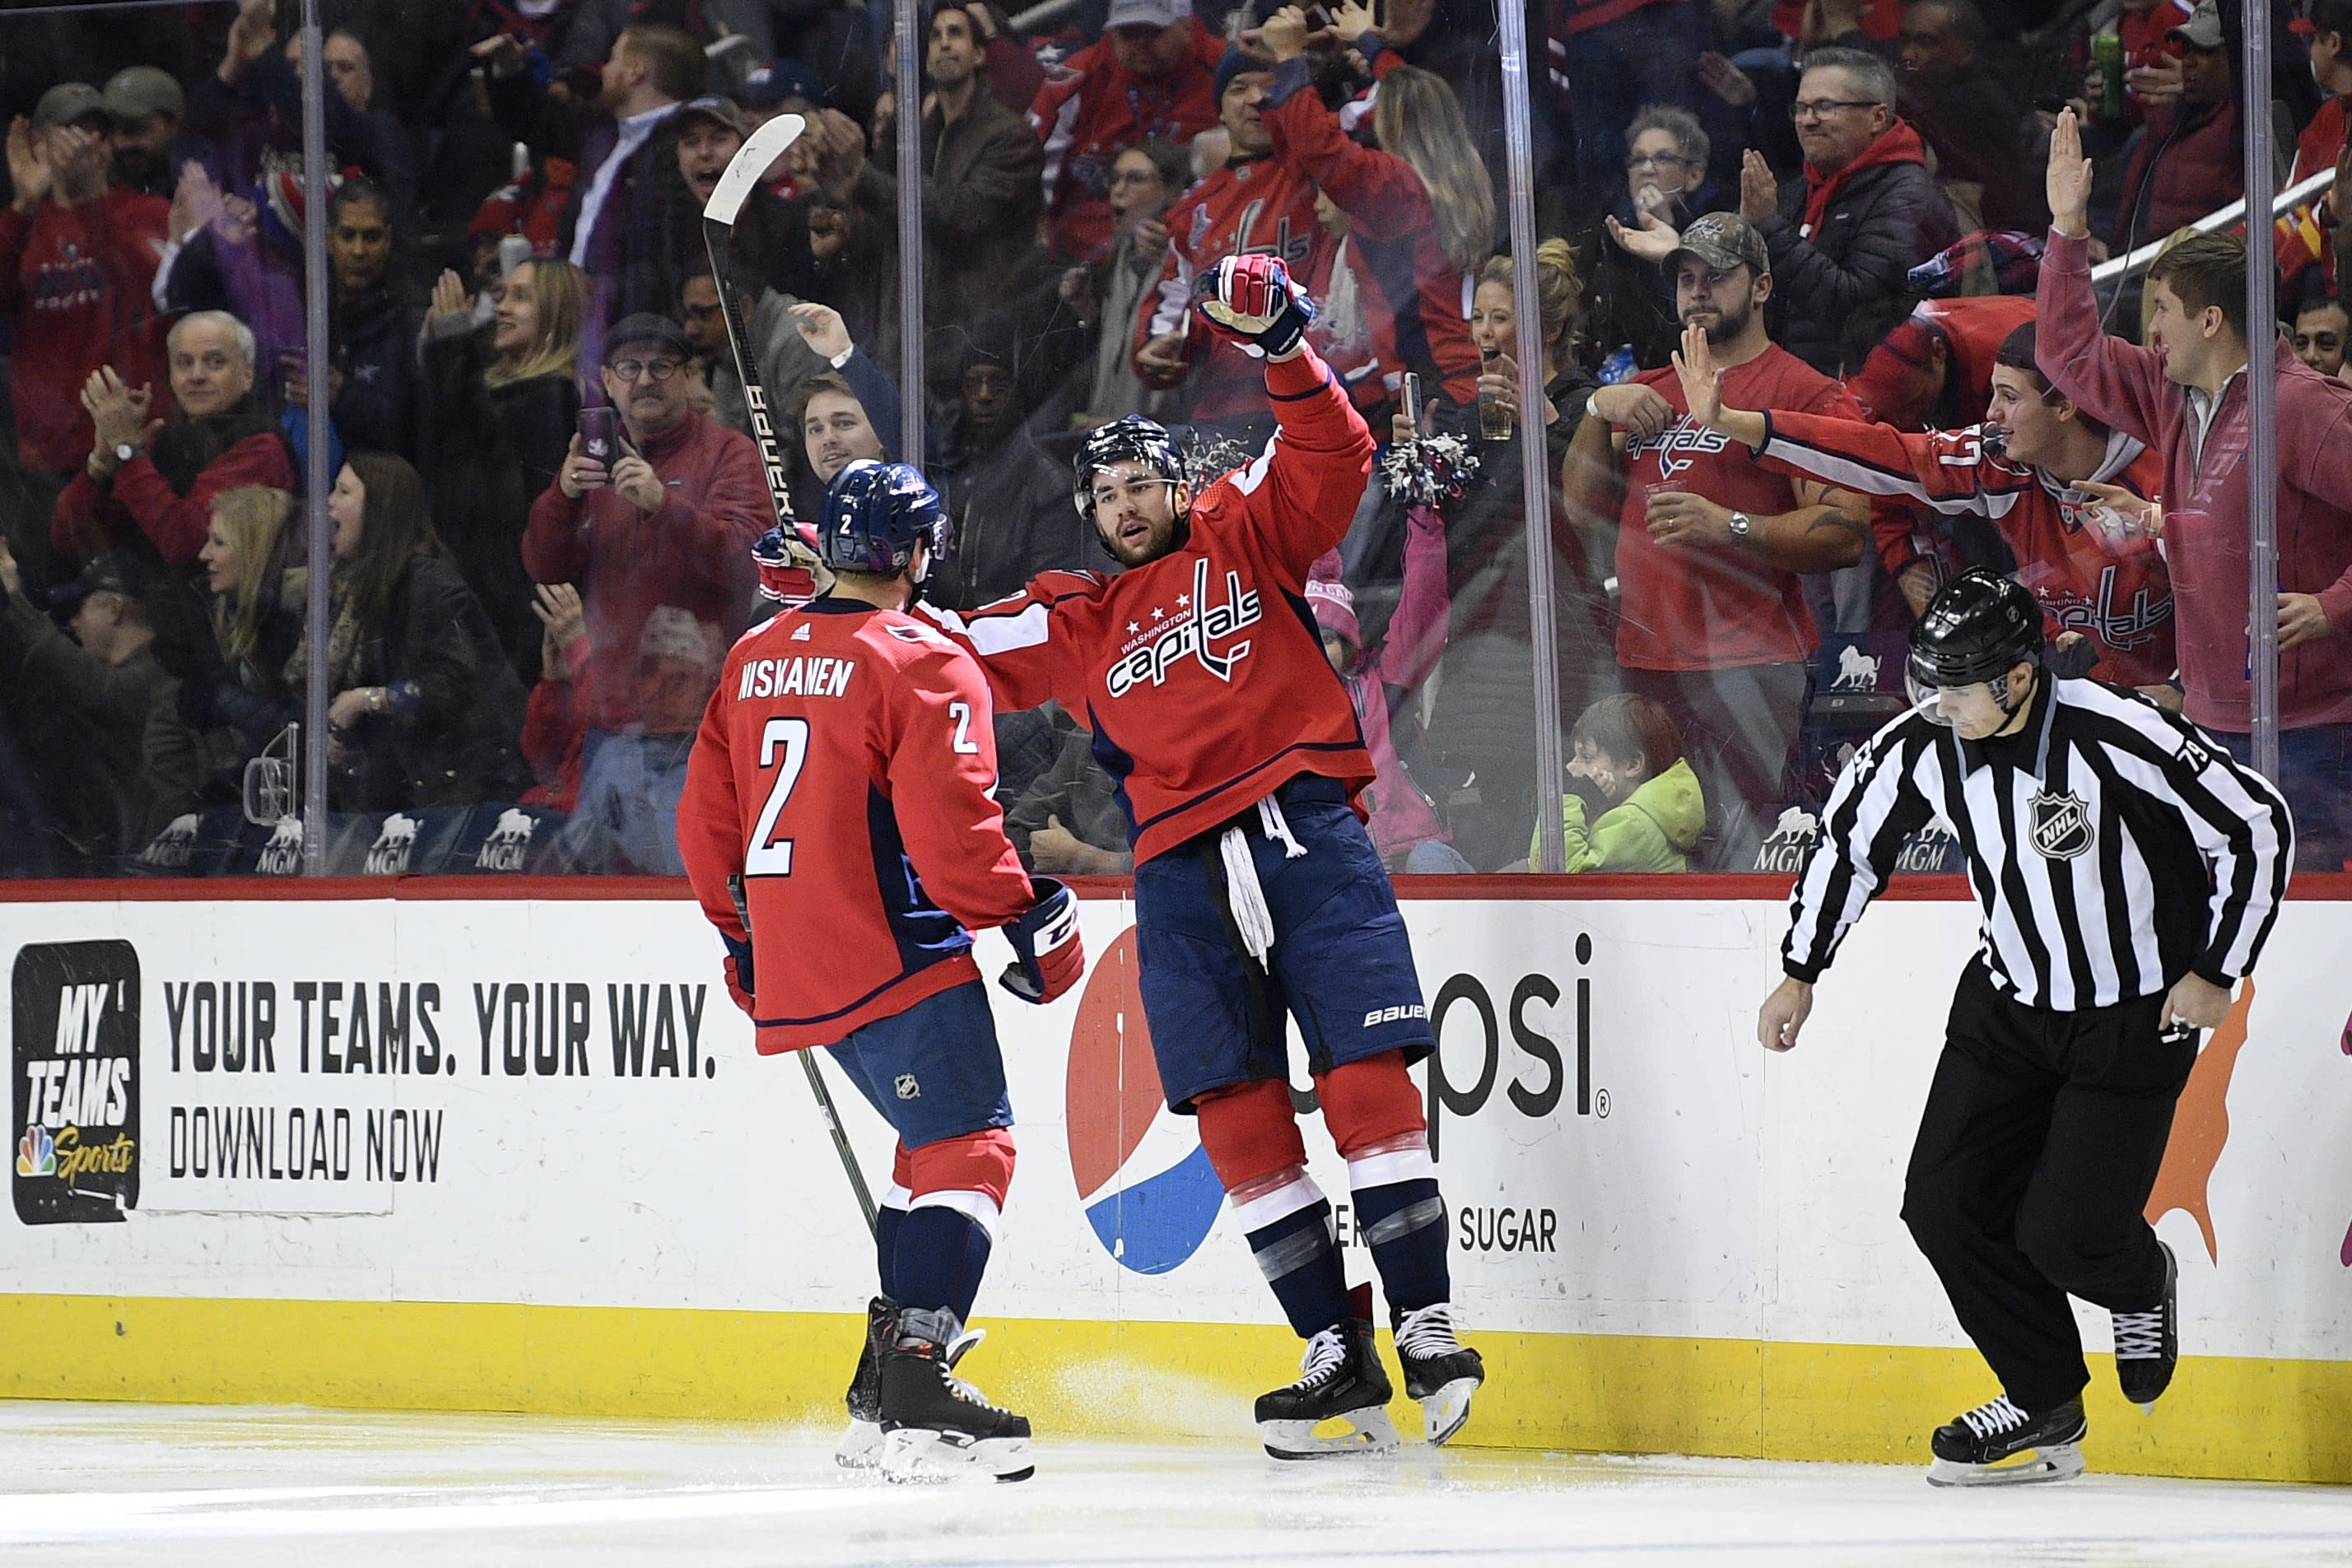 b3d968cf3c2 Capitals beat Flames 4-3 without Ovechkin to end 7-game skid